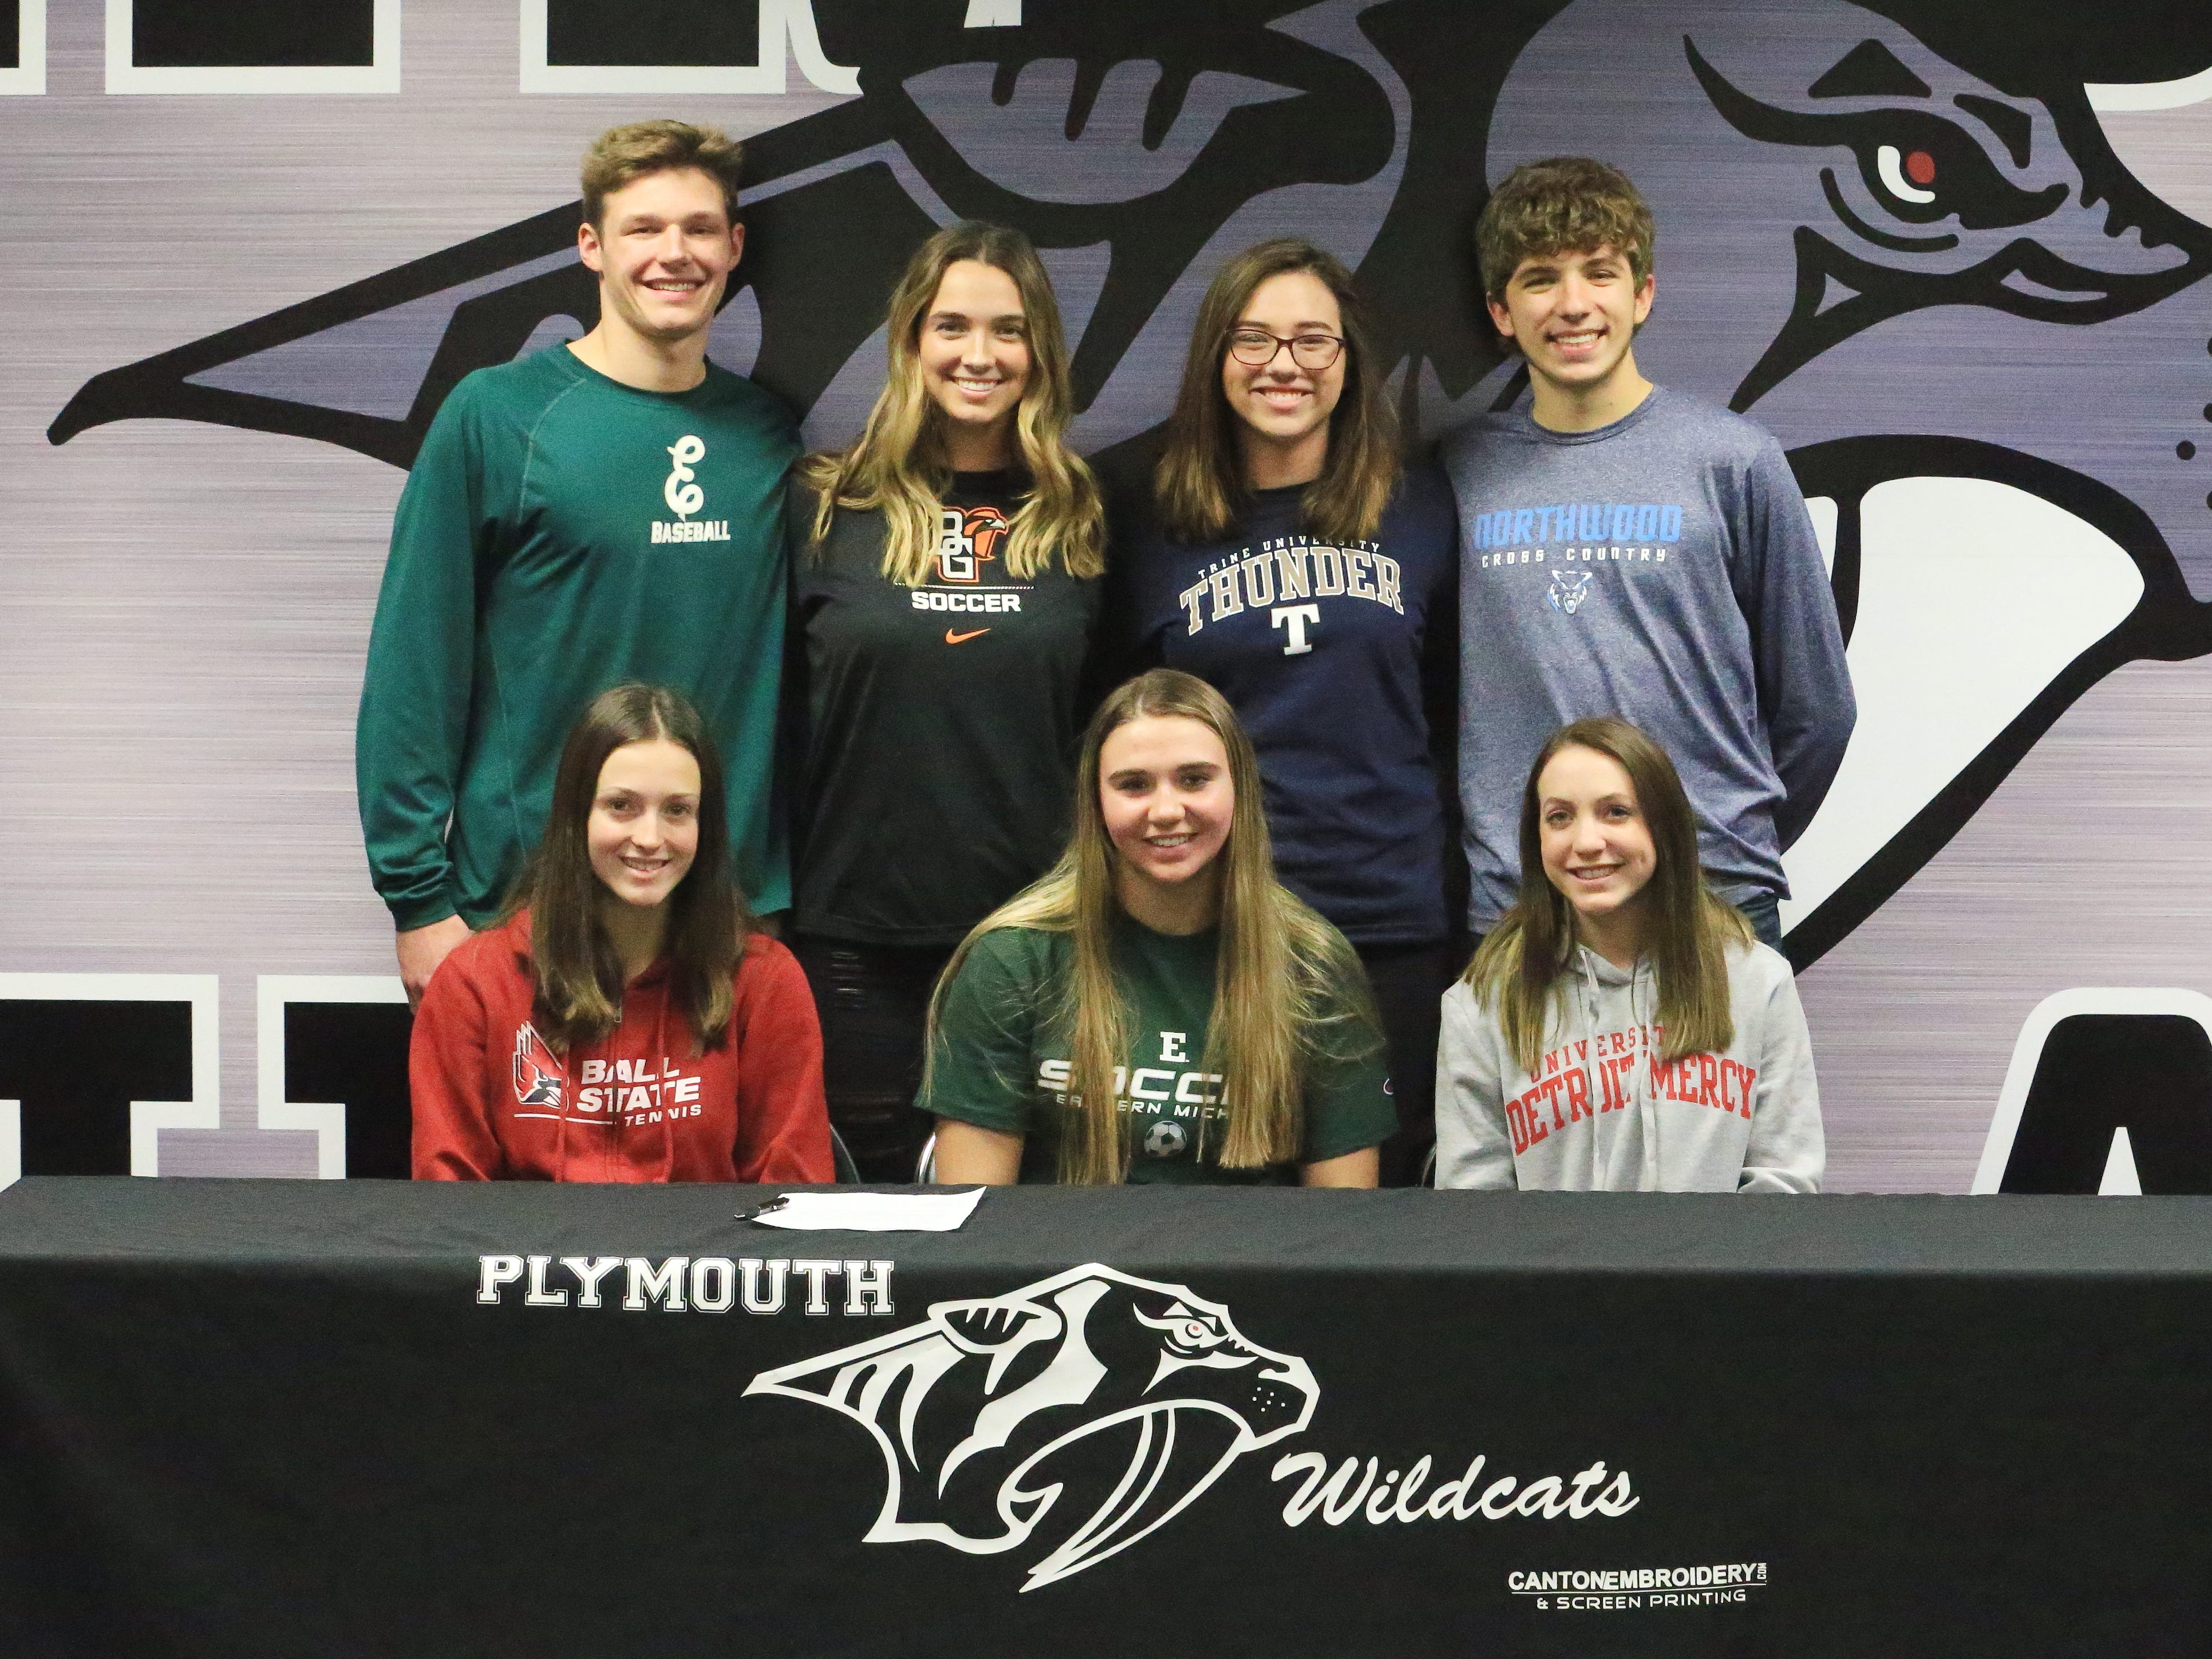 College futures are payoff for these motivated Plymouth athletes